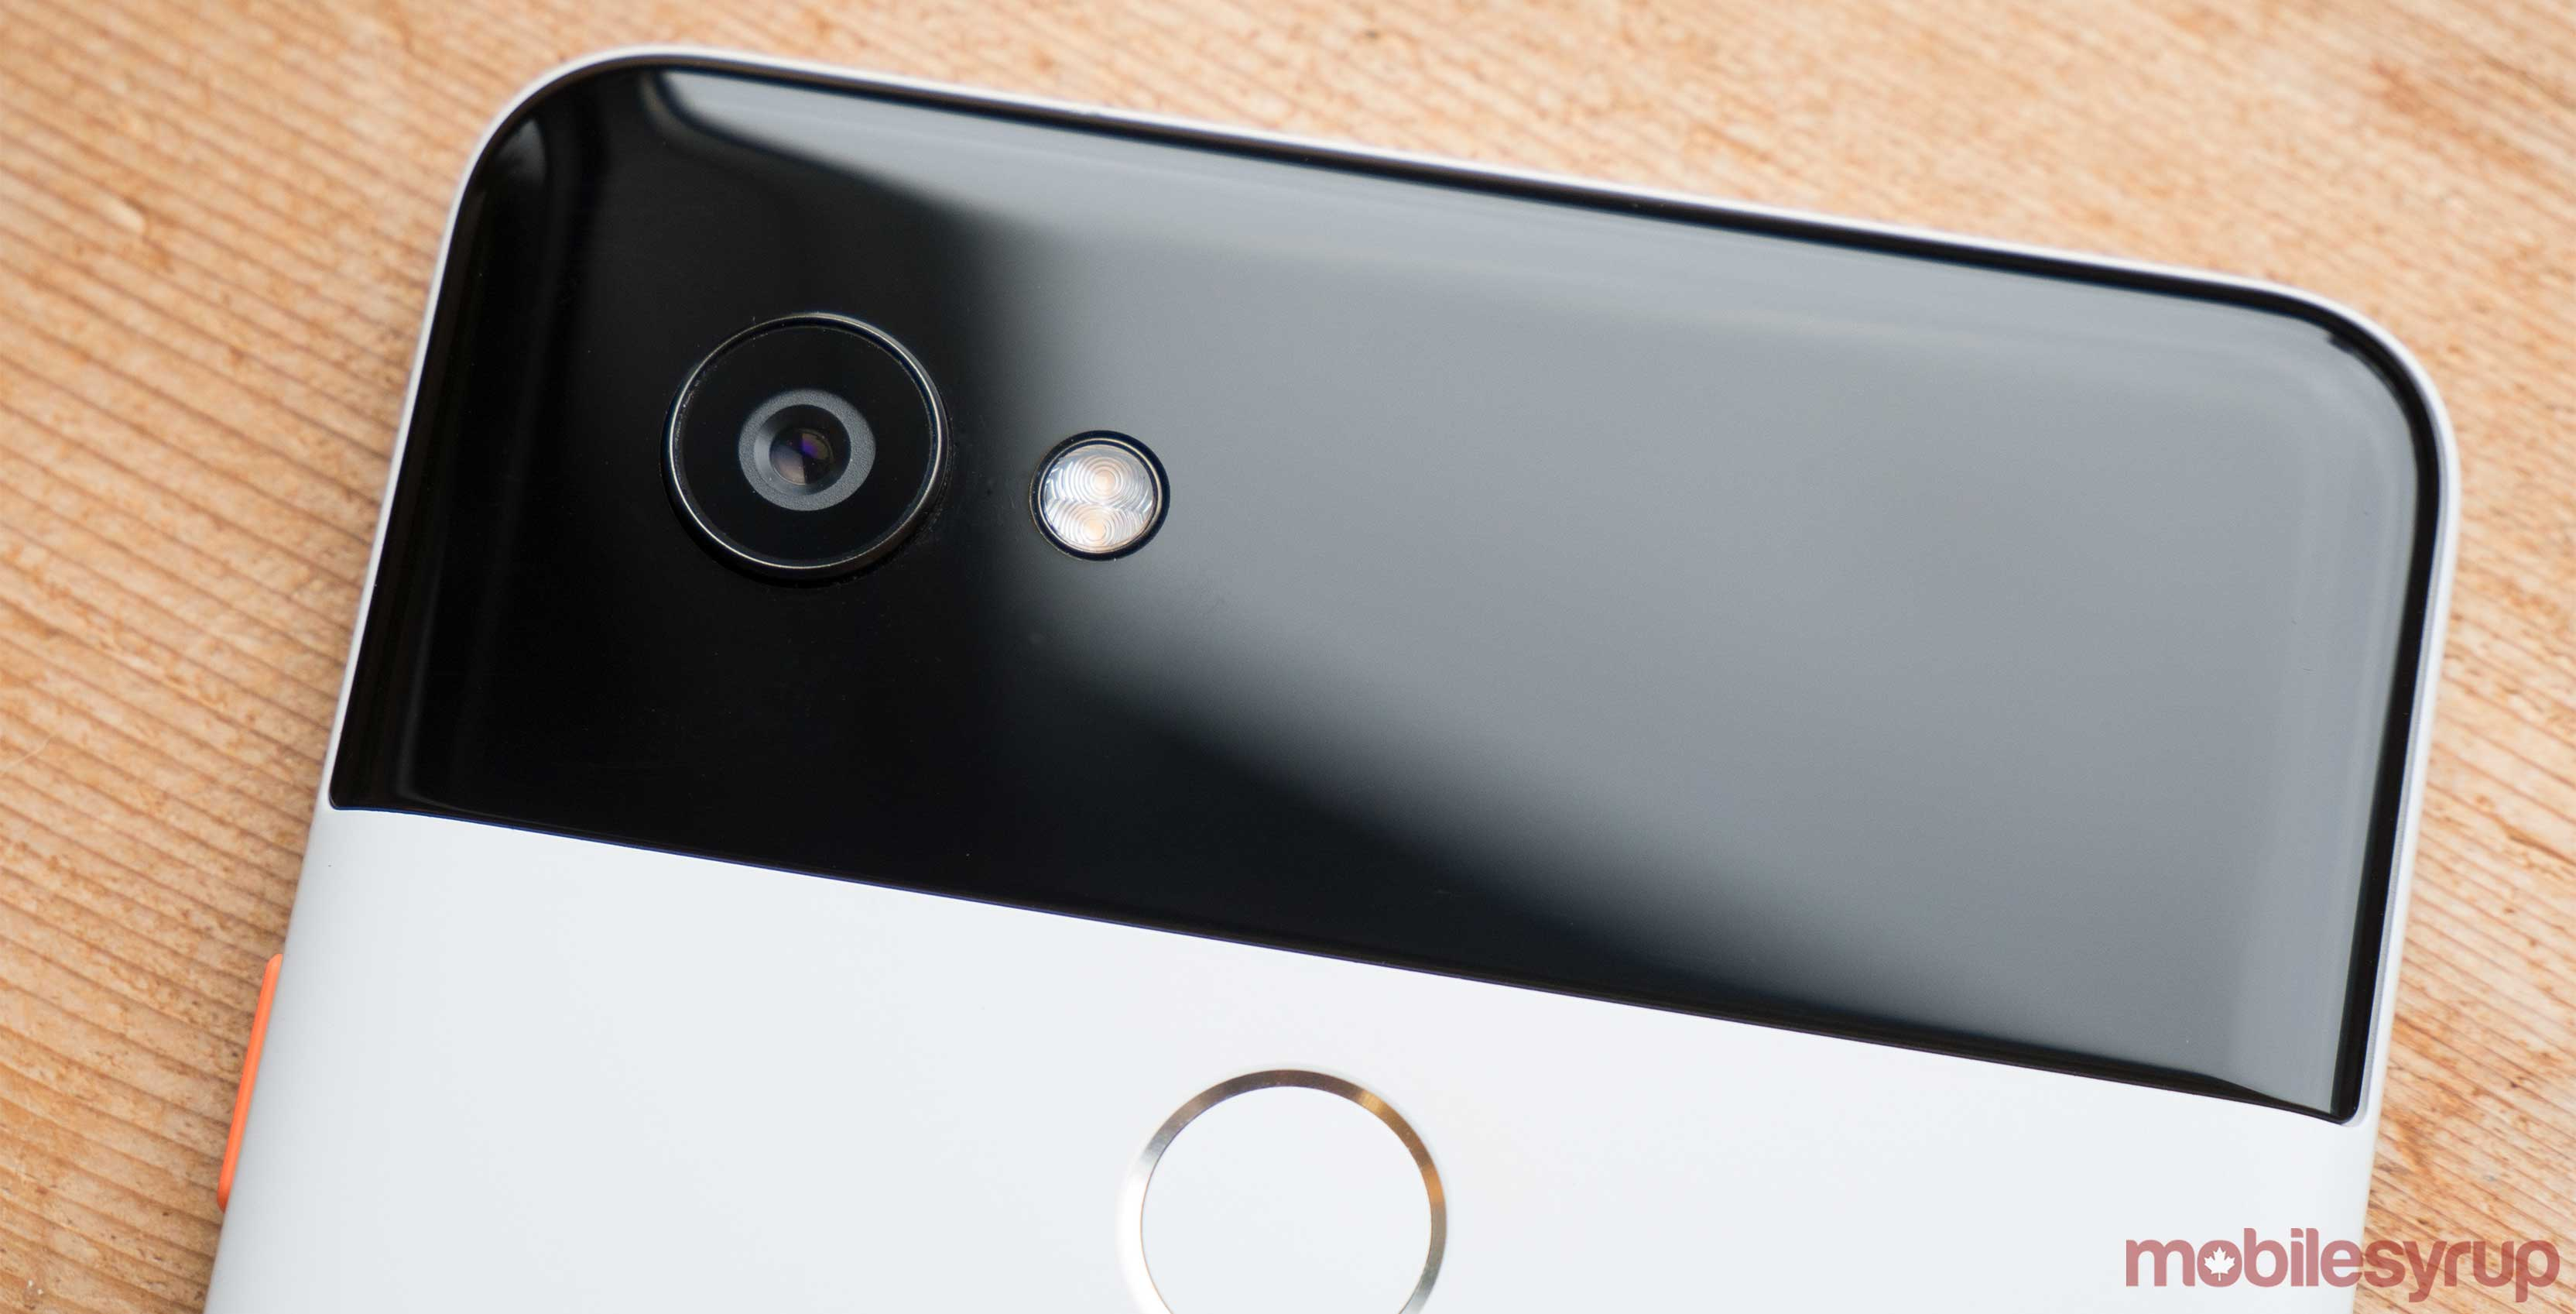 Google Lens now live on all Android phones through Photos